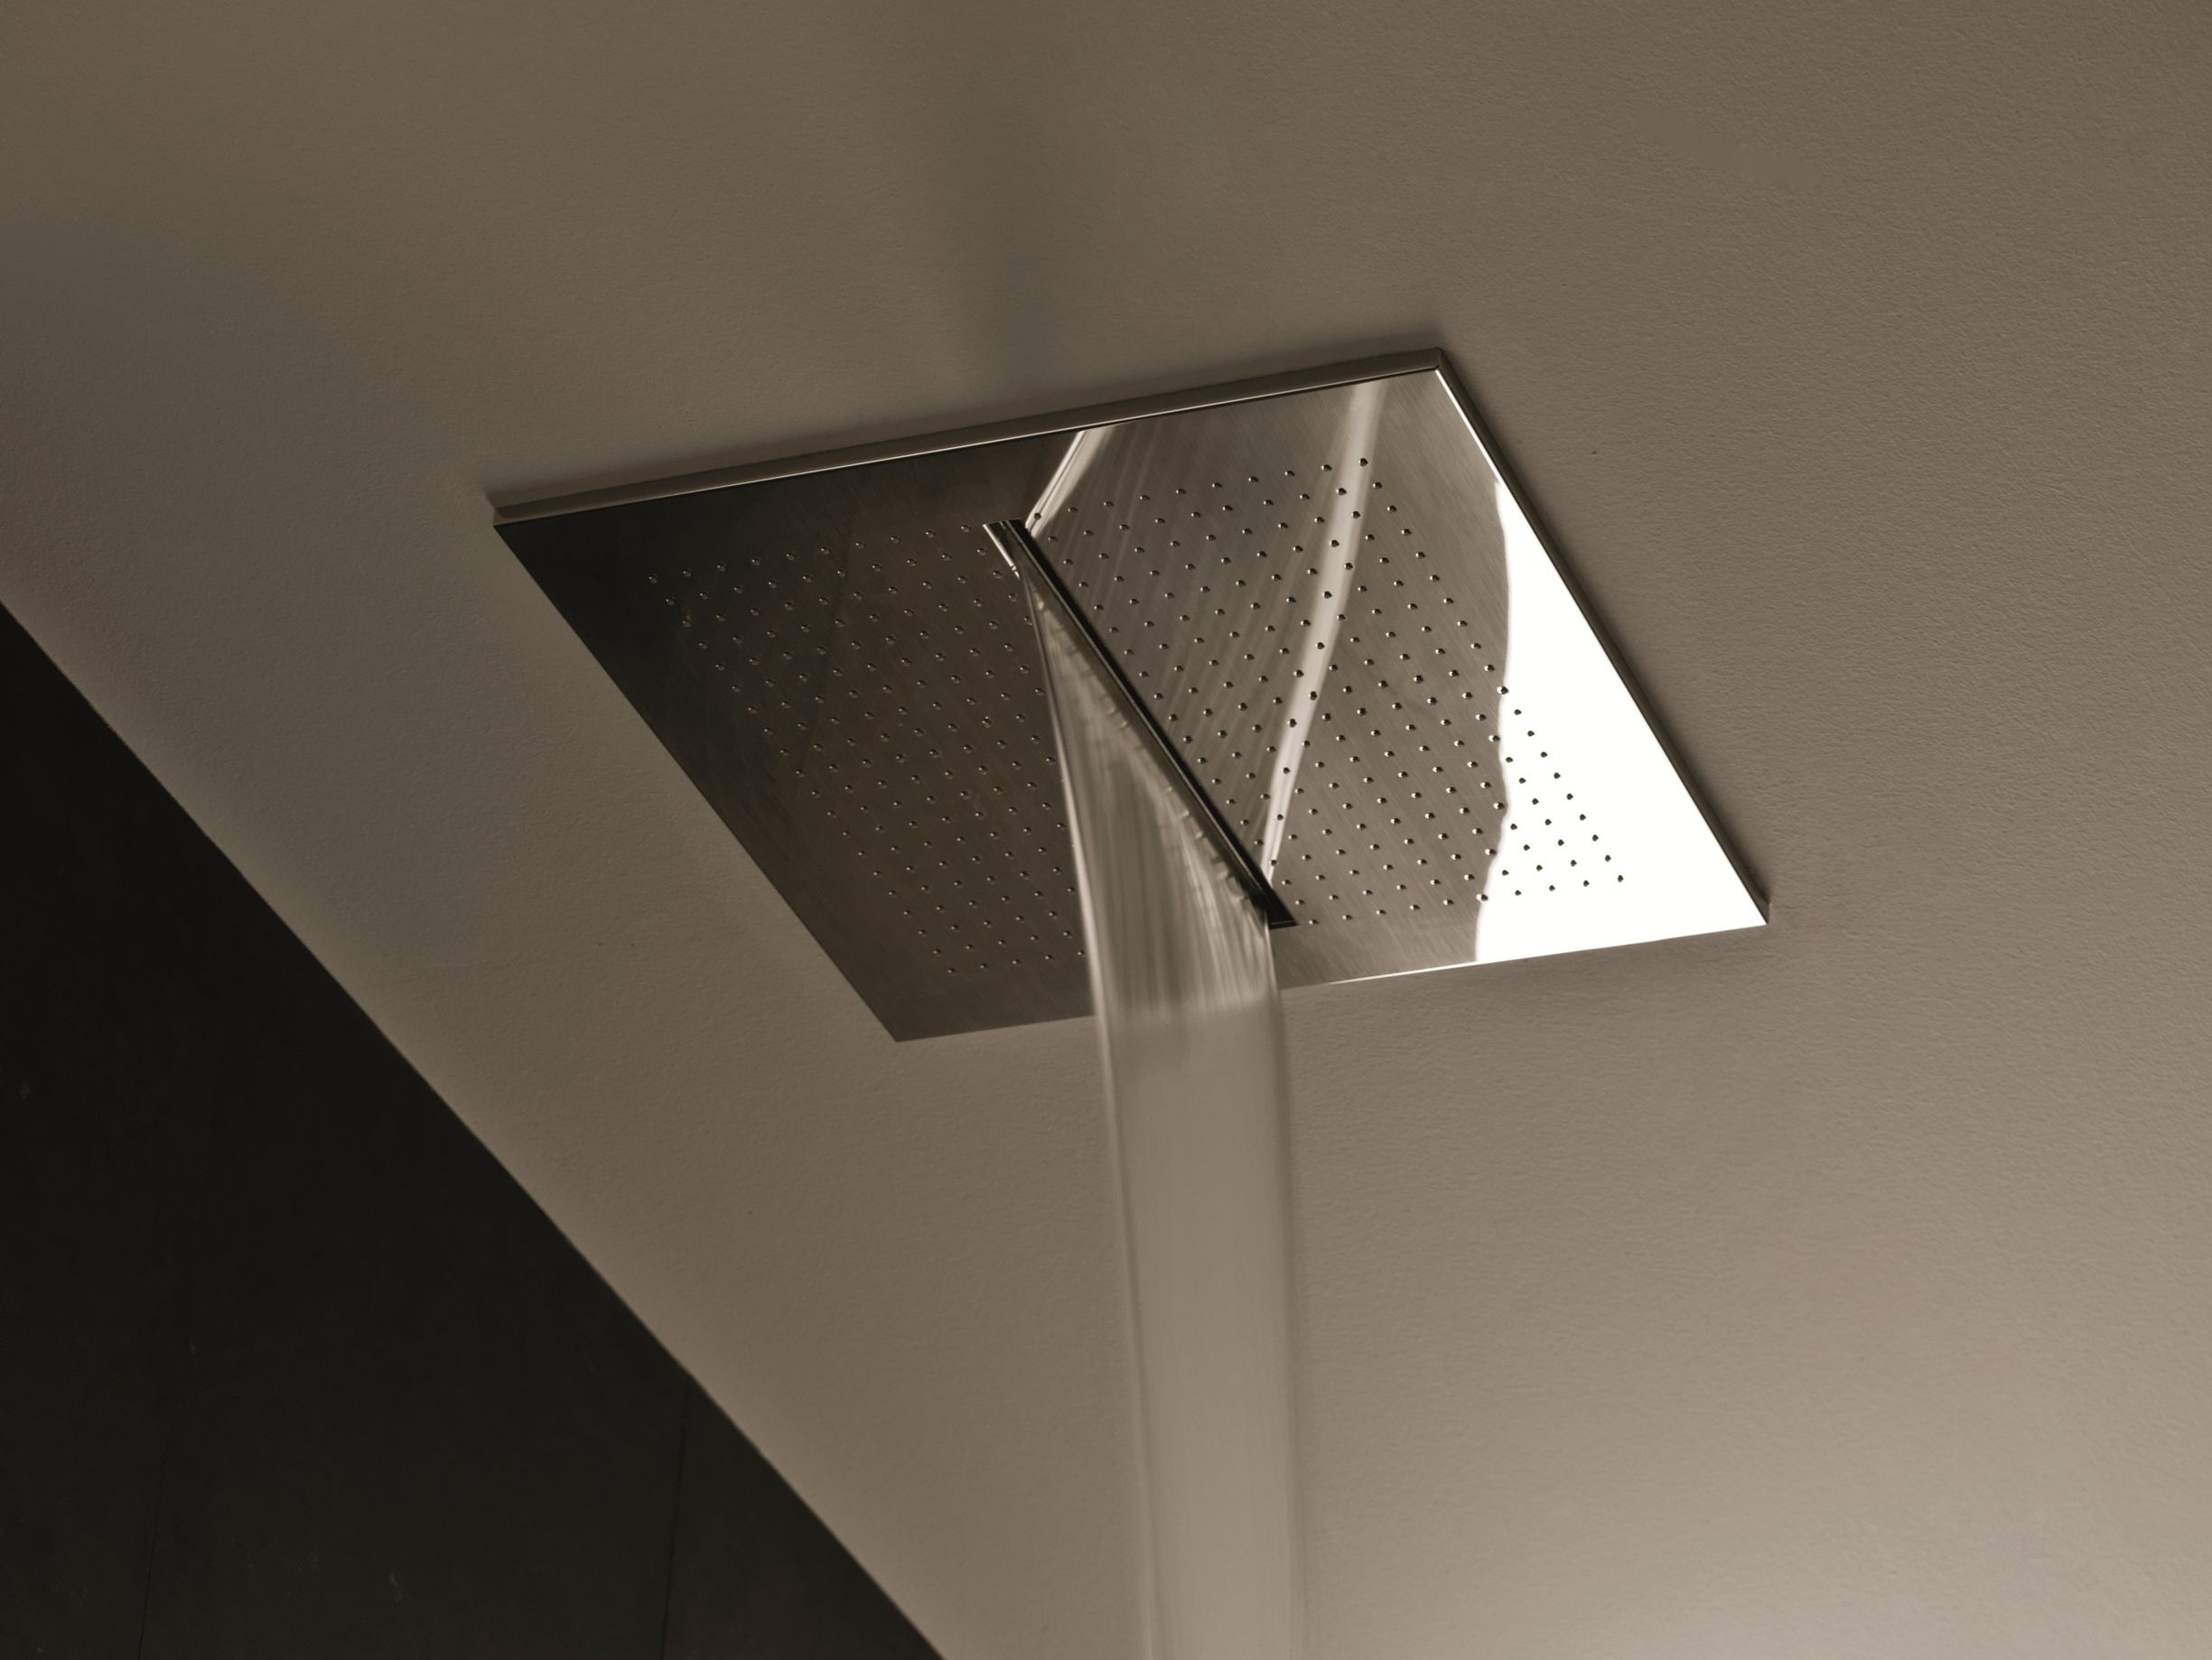 Acqua zone dream overhead shower by fantini rubinetti for Rubinetti design